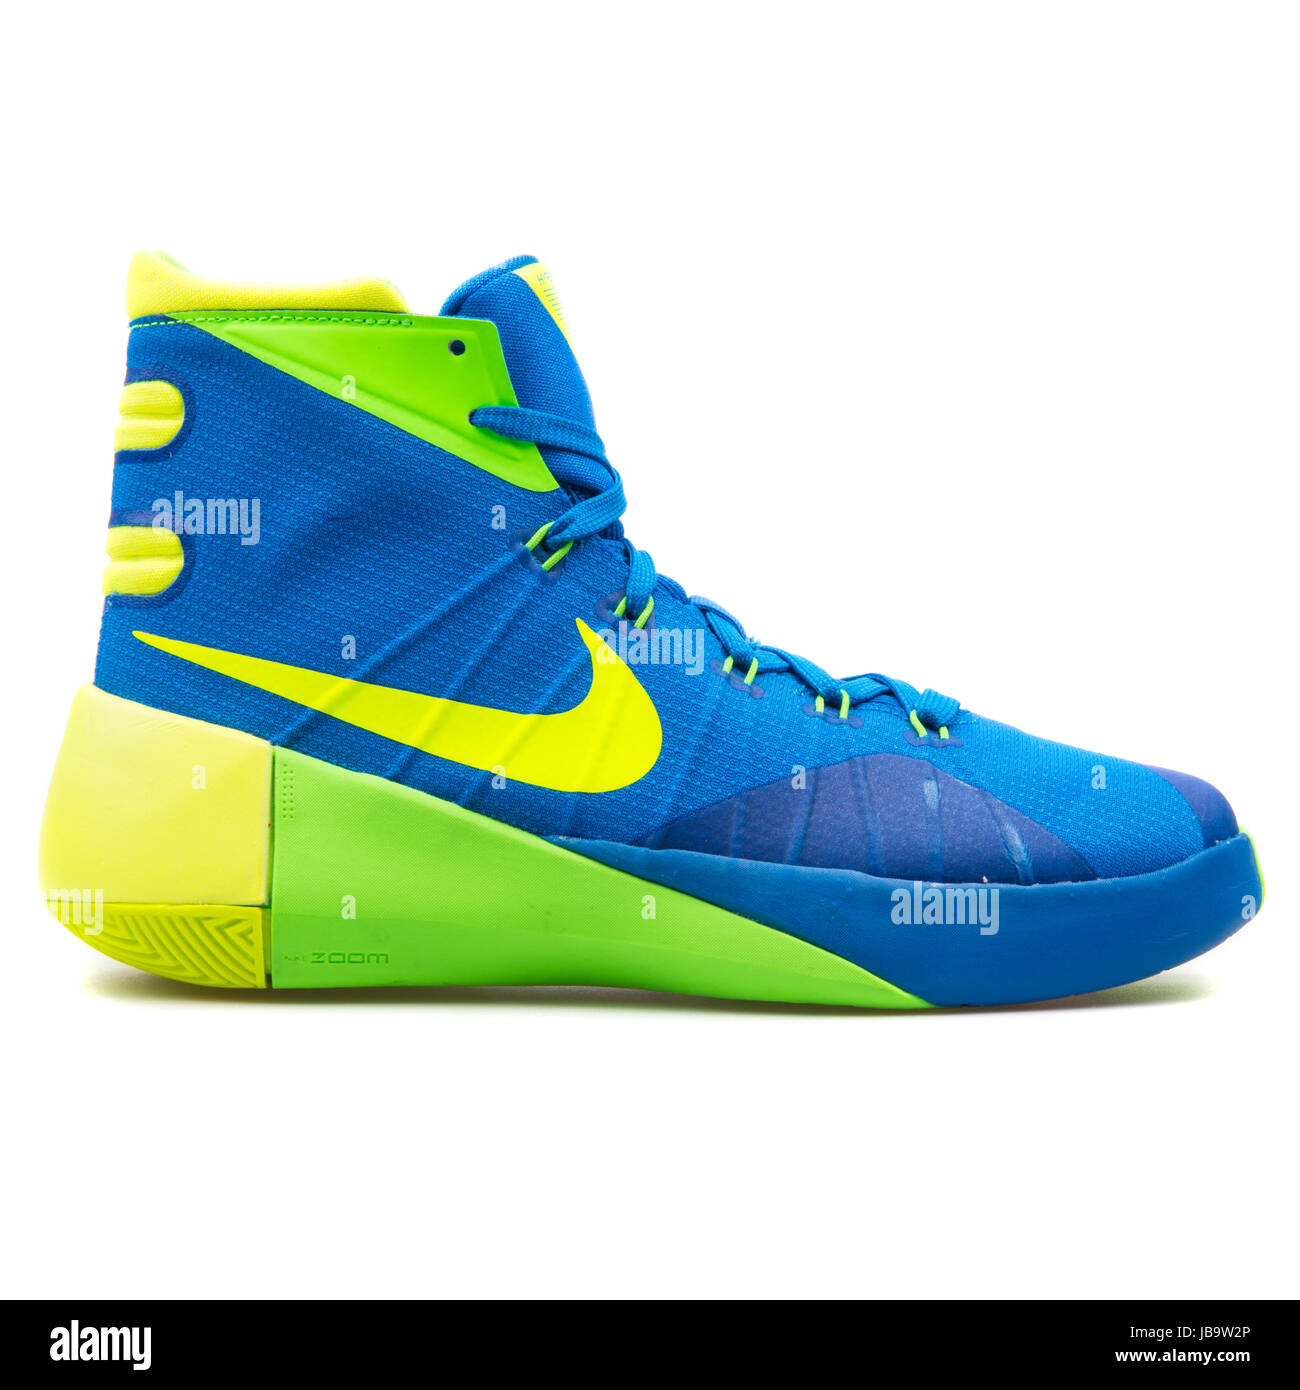 063a7ffb2111 ... where to buy nike hyperdunk 2015 gs blue green and yellow youths  basketball shoes 759974 473